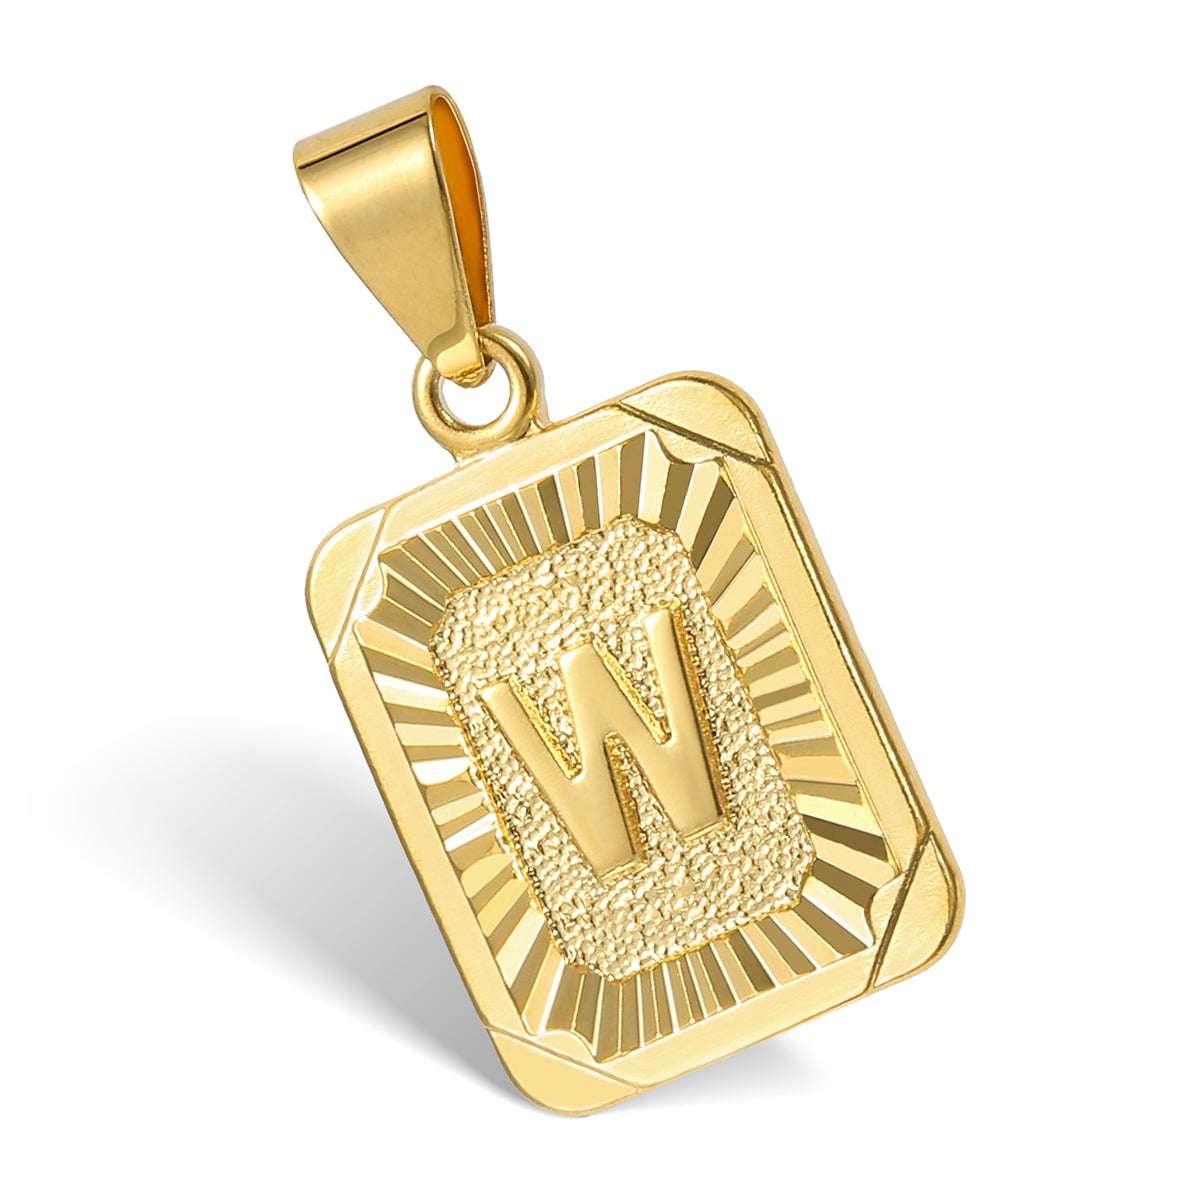 Gold Letter Pendant with Chain (3 weeks for delivery)